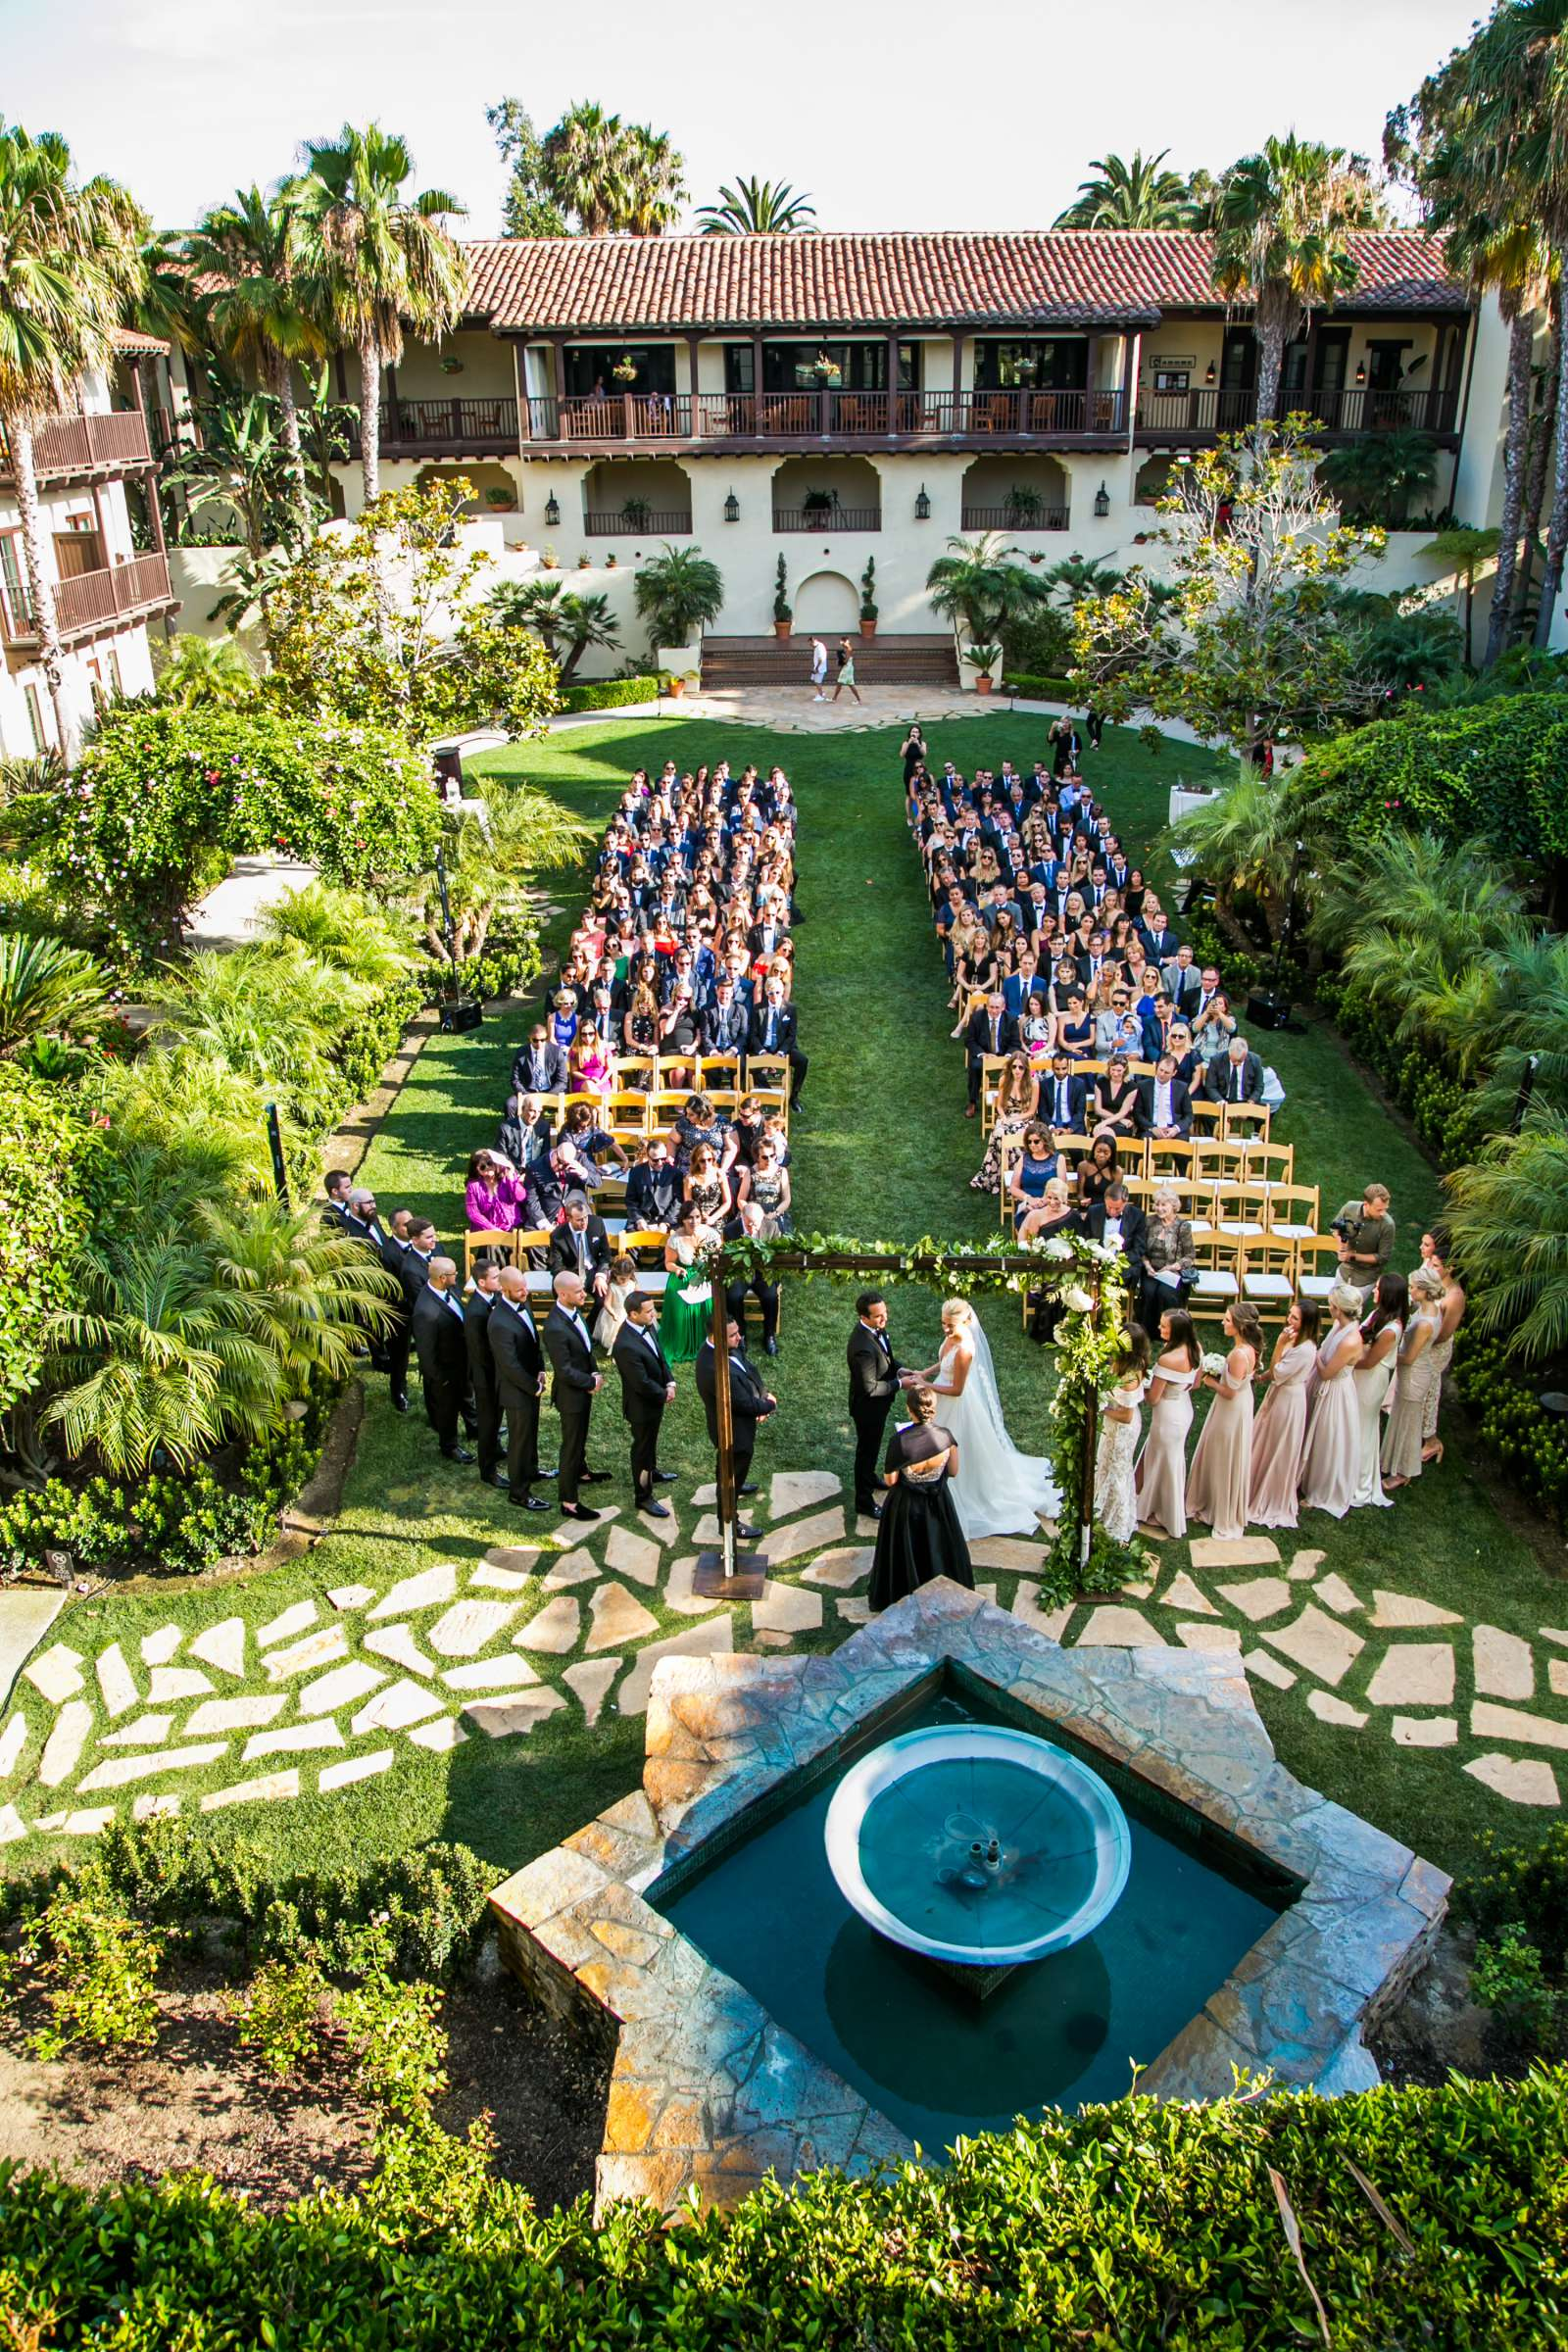 Estancia Wedding coordinated by Sweet Blossom Weddings, Kimberly and Sabah Wedding Photo #479688 by True Photography